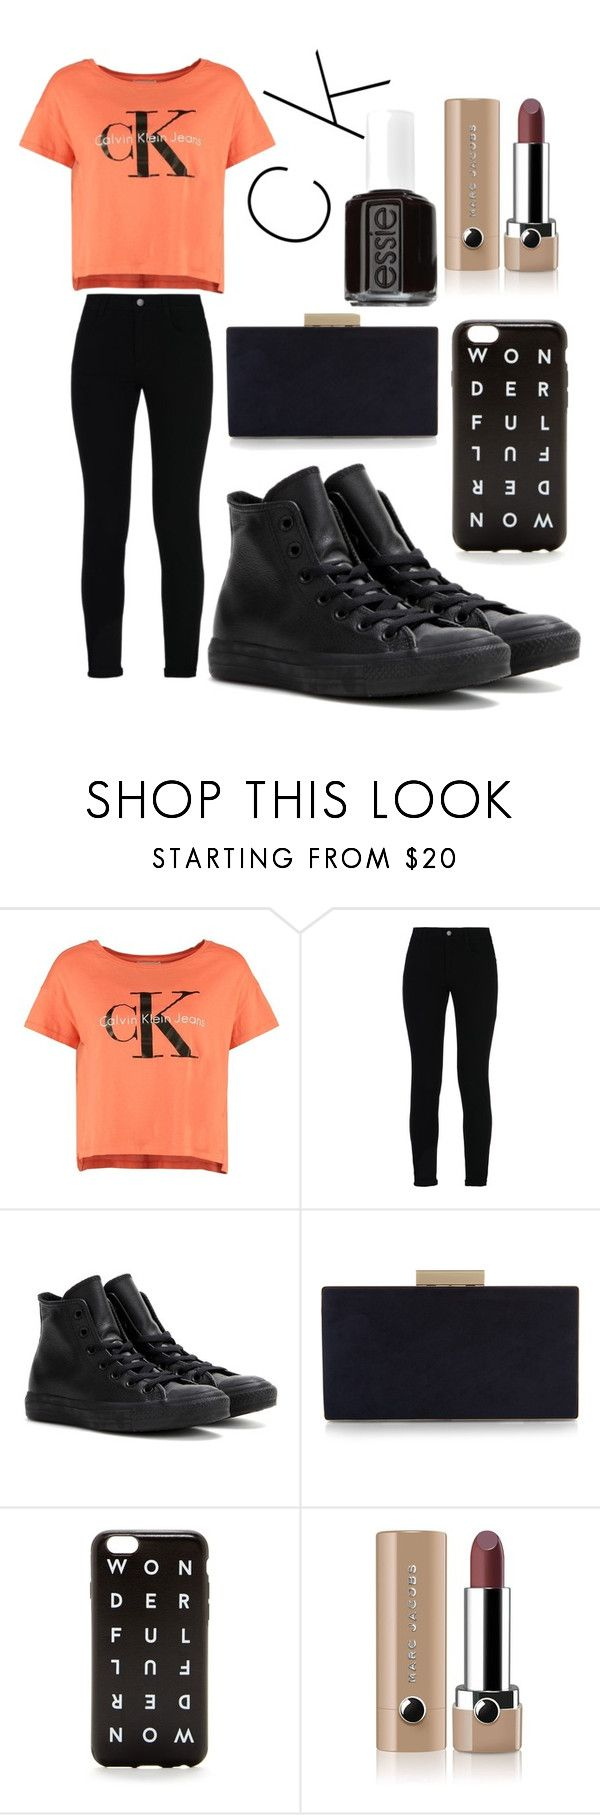 """c K 2"" by cintia2019 ❤ liked on Polyvore featuring Calvin Klein, STELLA McCARTNEY, Converse, Monsoon, J.Crew, Marc Jacobs and Essie"